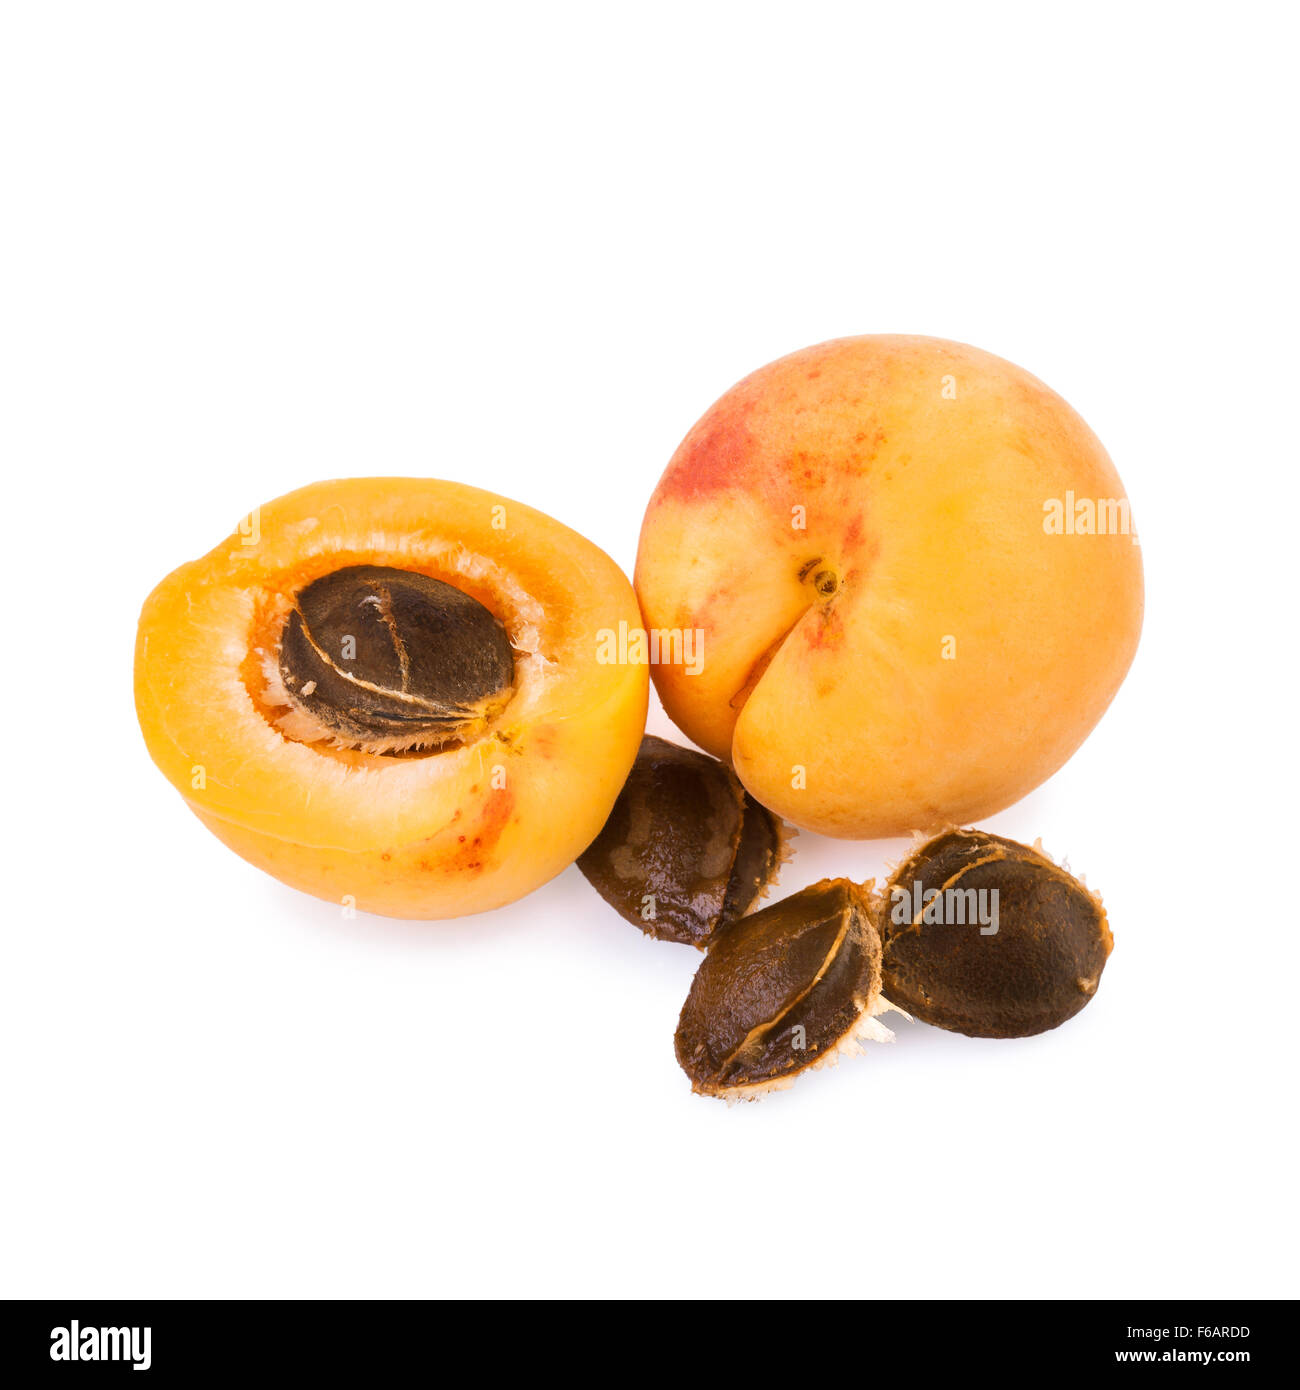 Apricot and half of fruit with fruits core - Stock Image